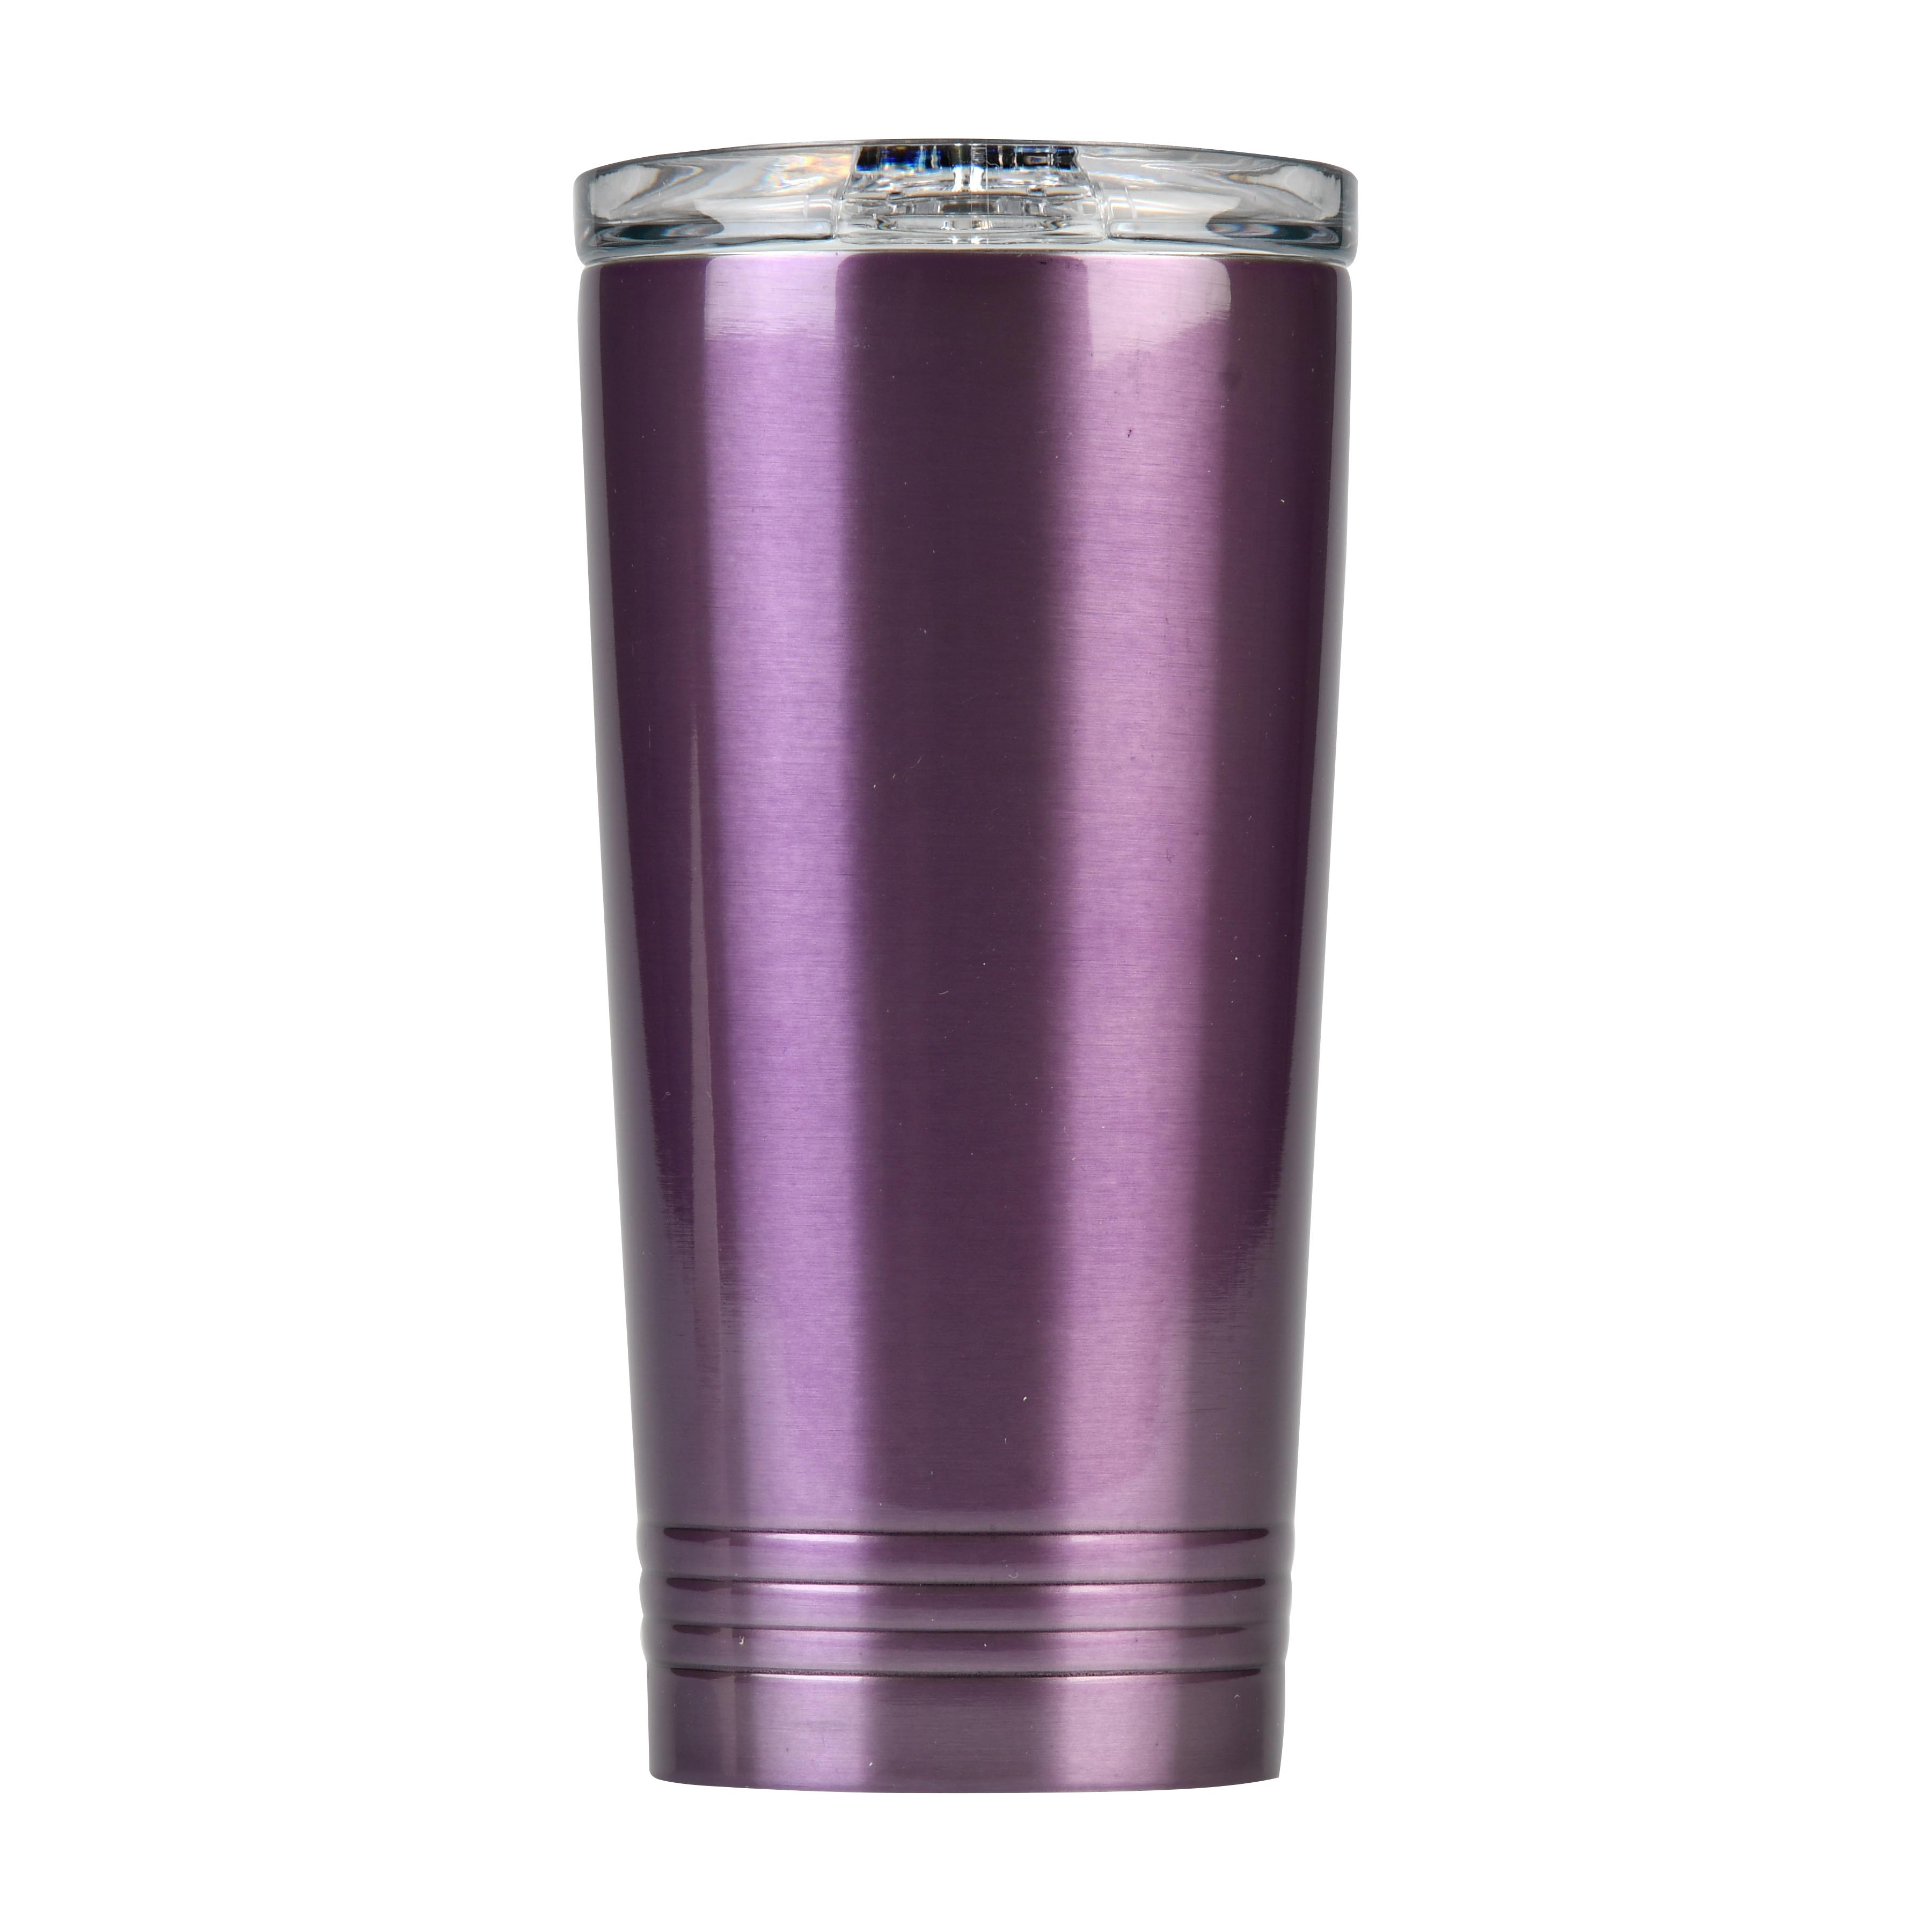 Mainstays Stainless Steel Double Wall Tumbler, Purple, 16 oz